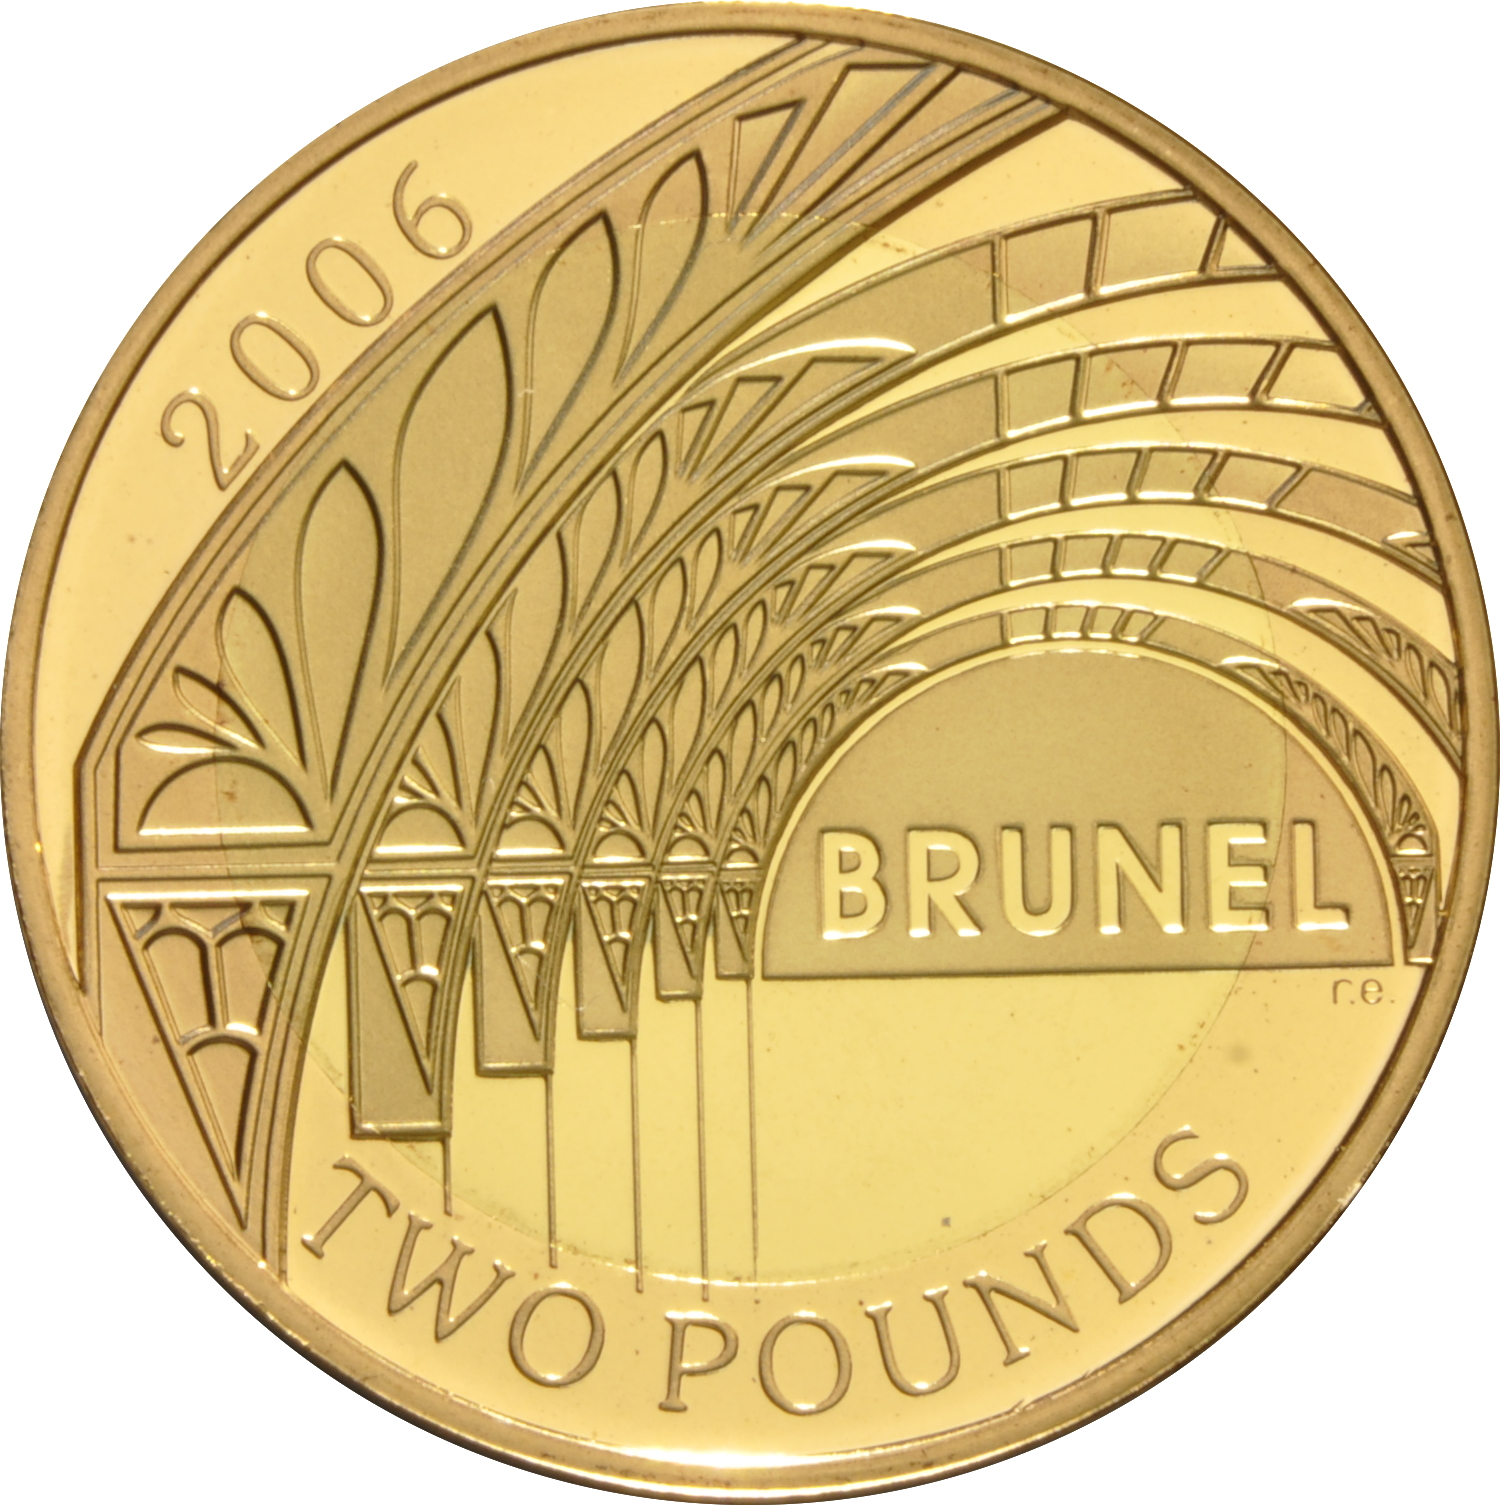 weight of new 1 pound coin